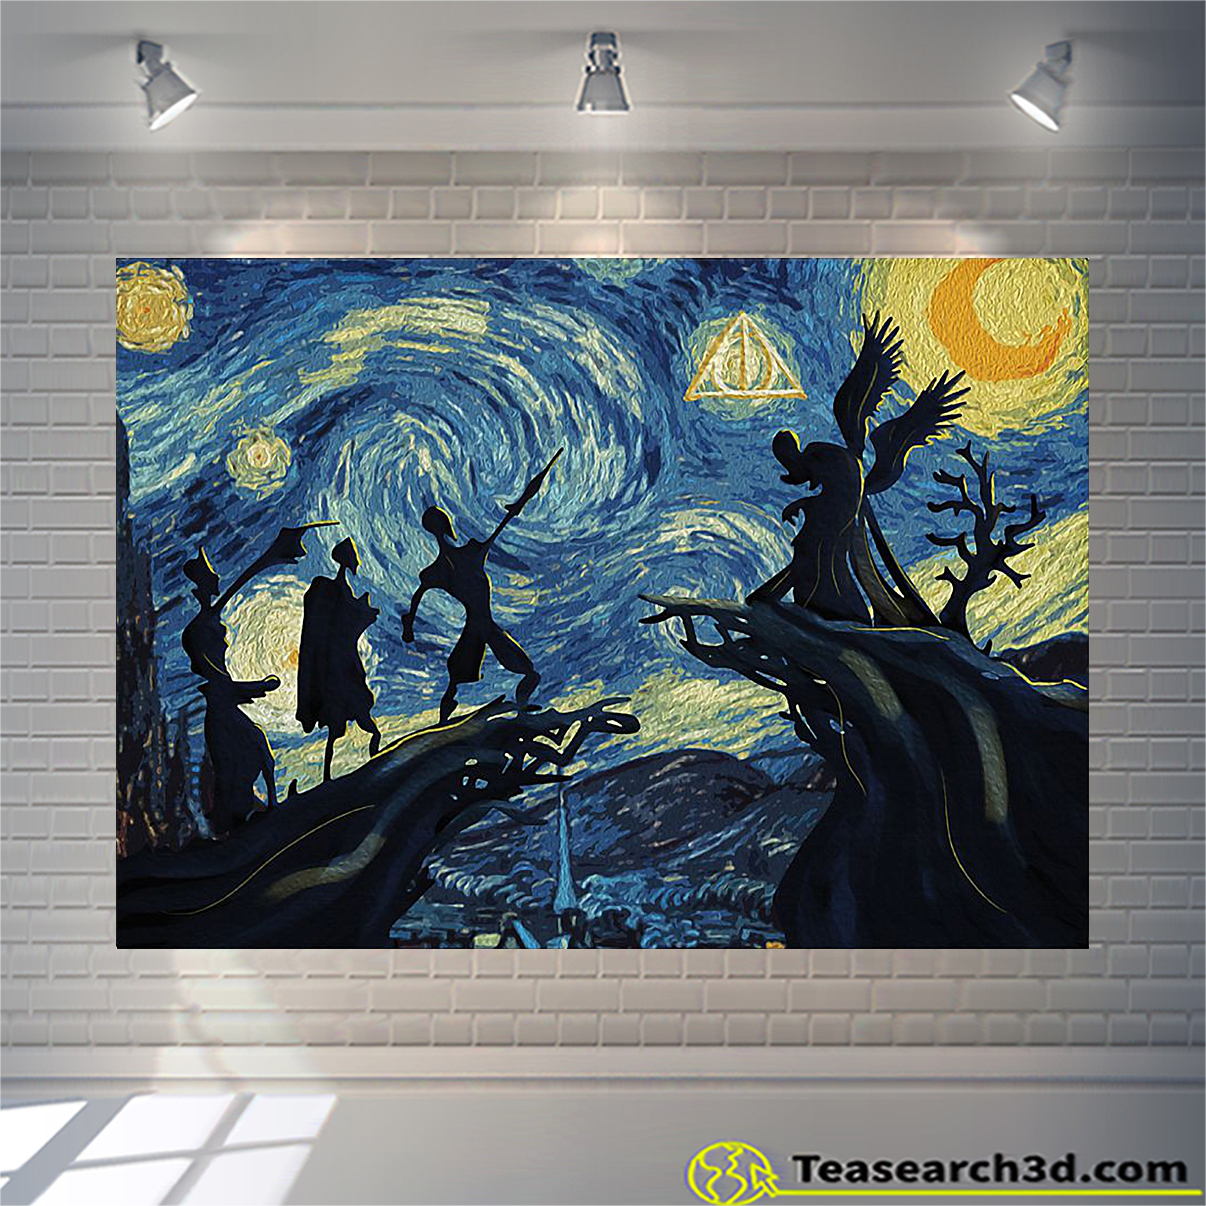 Deathly hallows harry potter starry night van gogh canvas